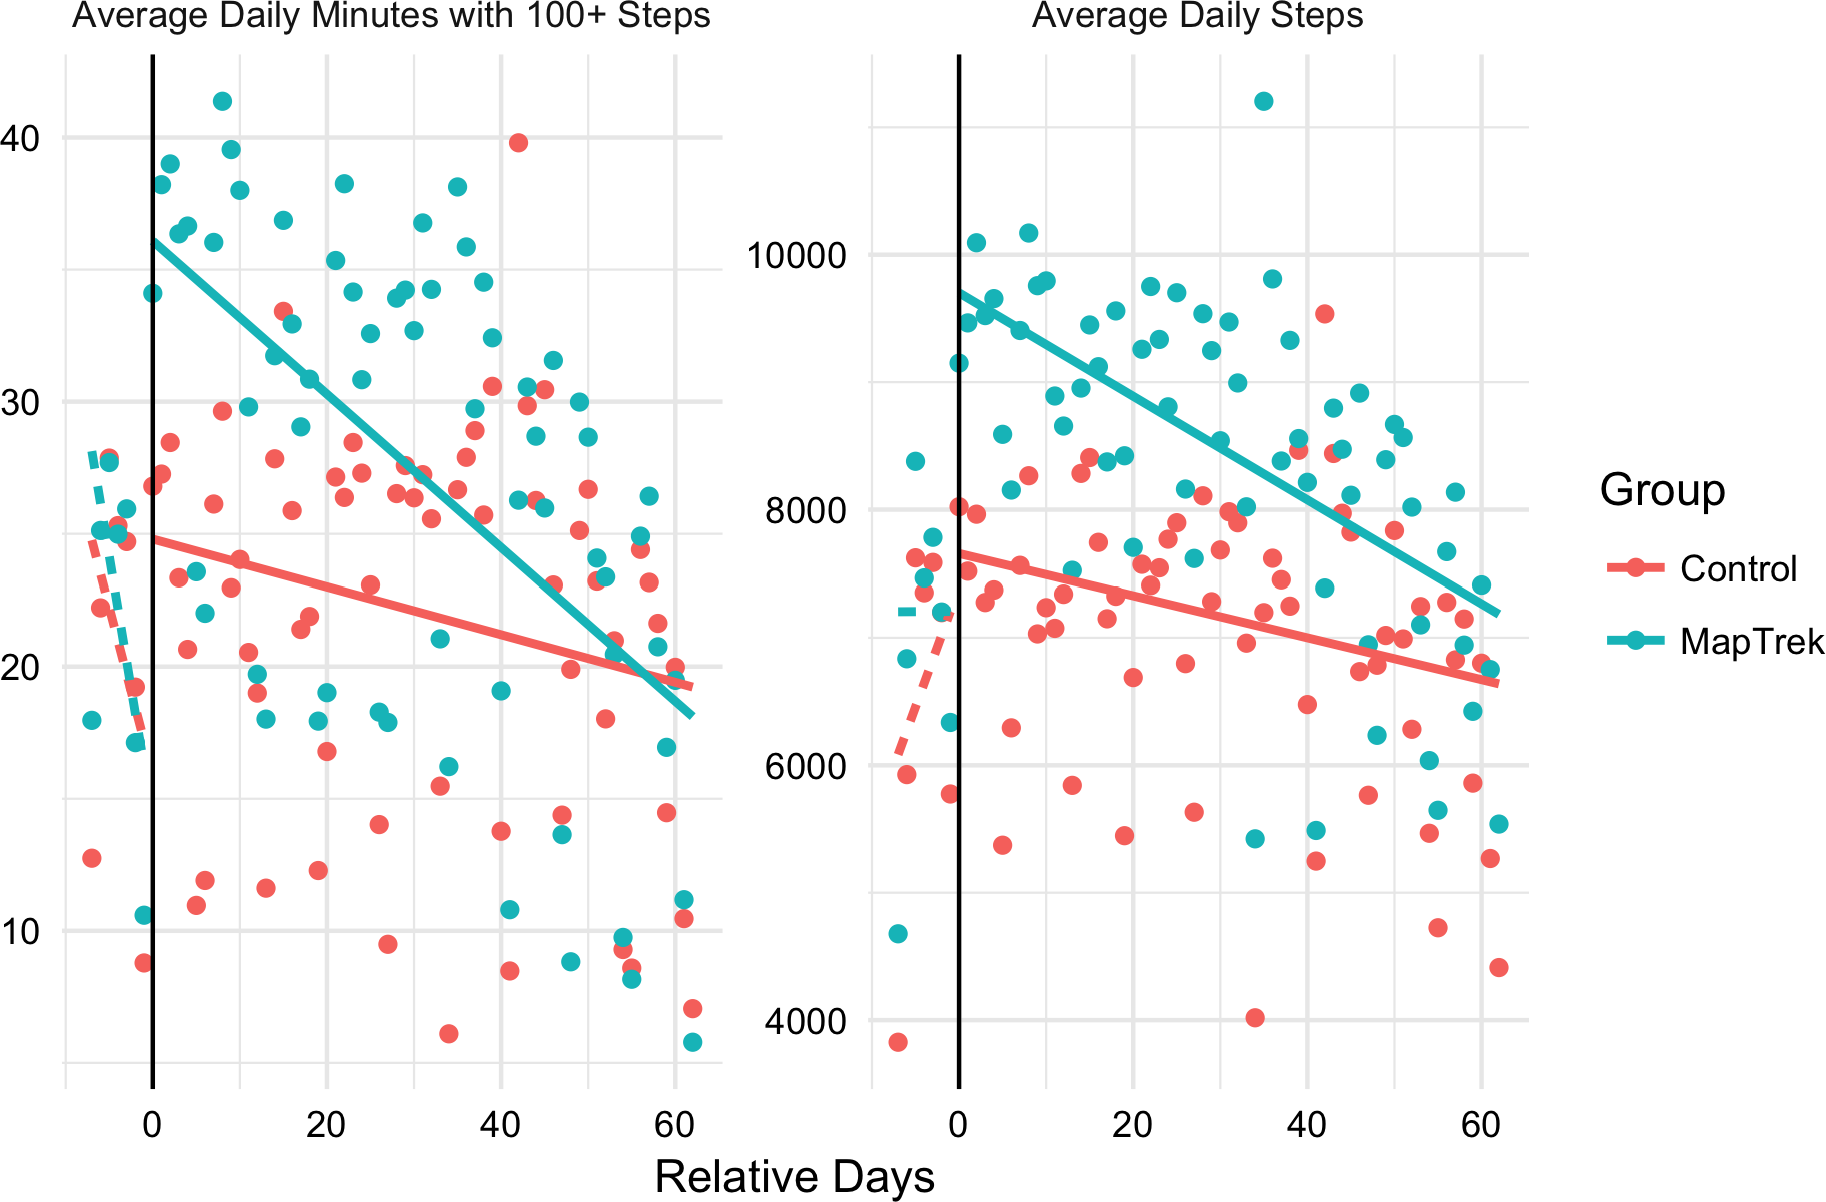 Gamifying Accelerometer Use Increases Physical Activity